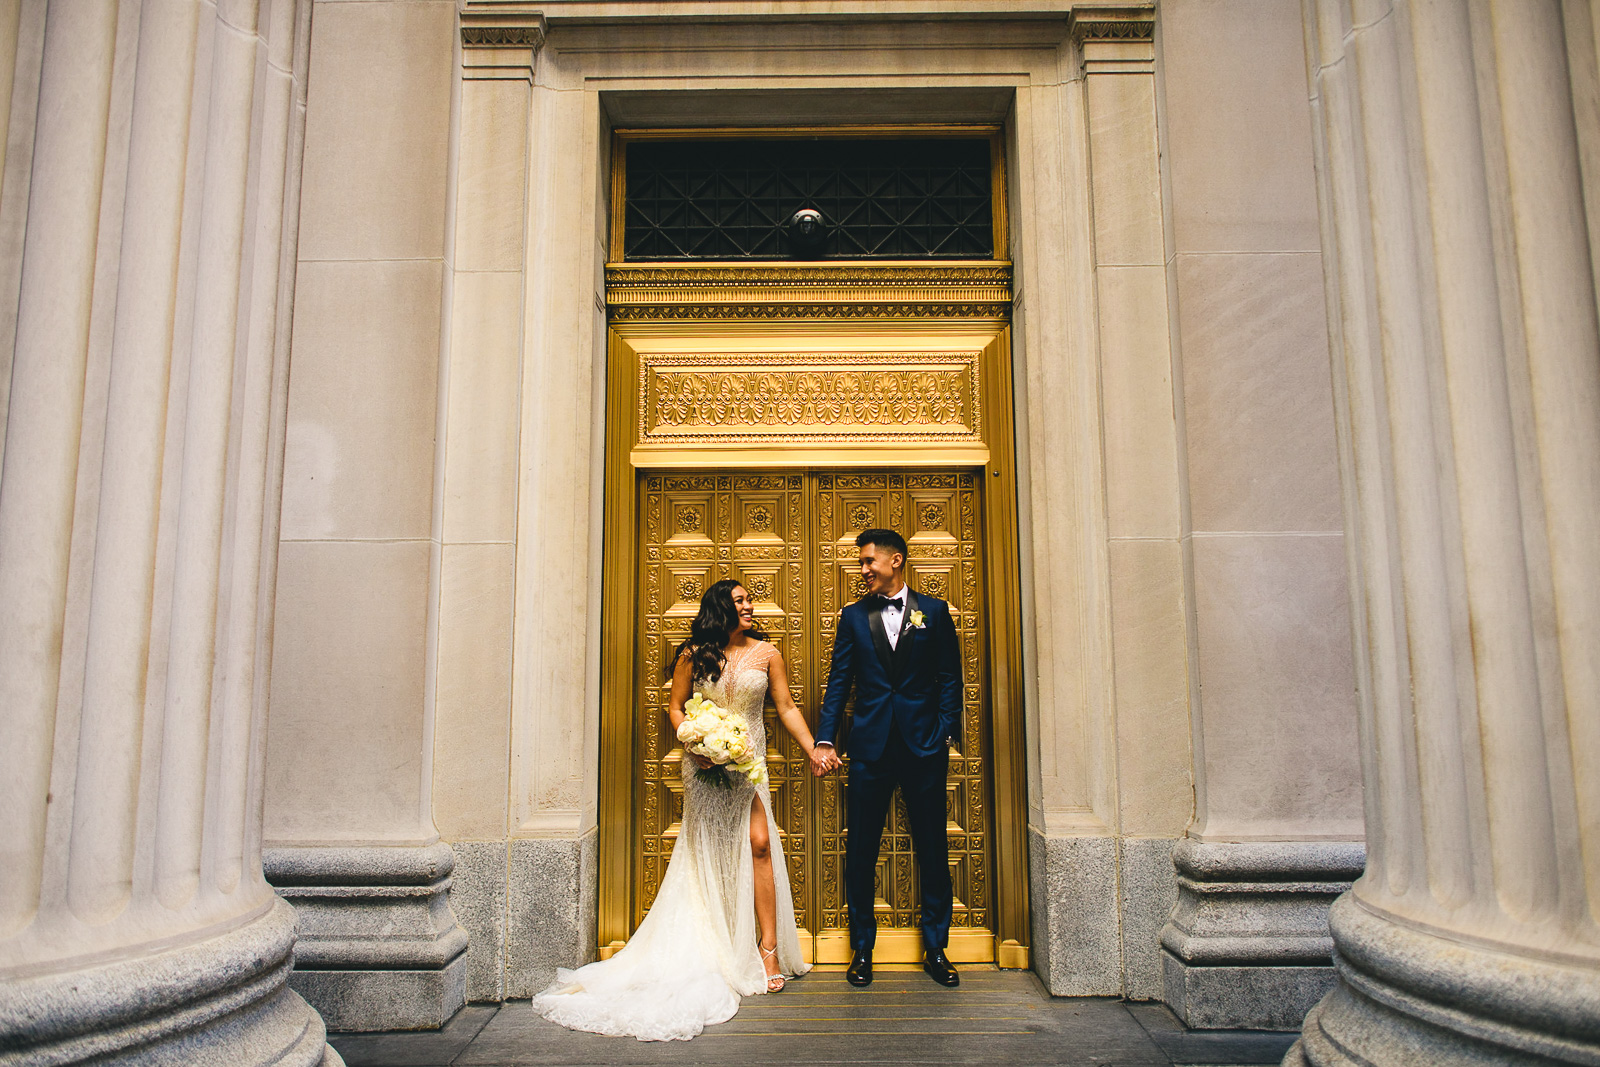 63 renaissance hotel chicago wedding photos - Renaissance Hotel Chicago Wedding Photos // Francine + RJ